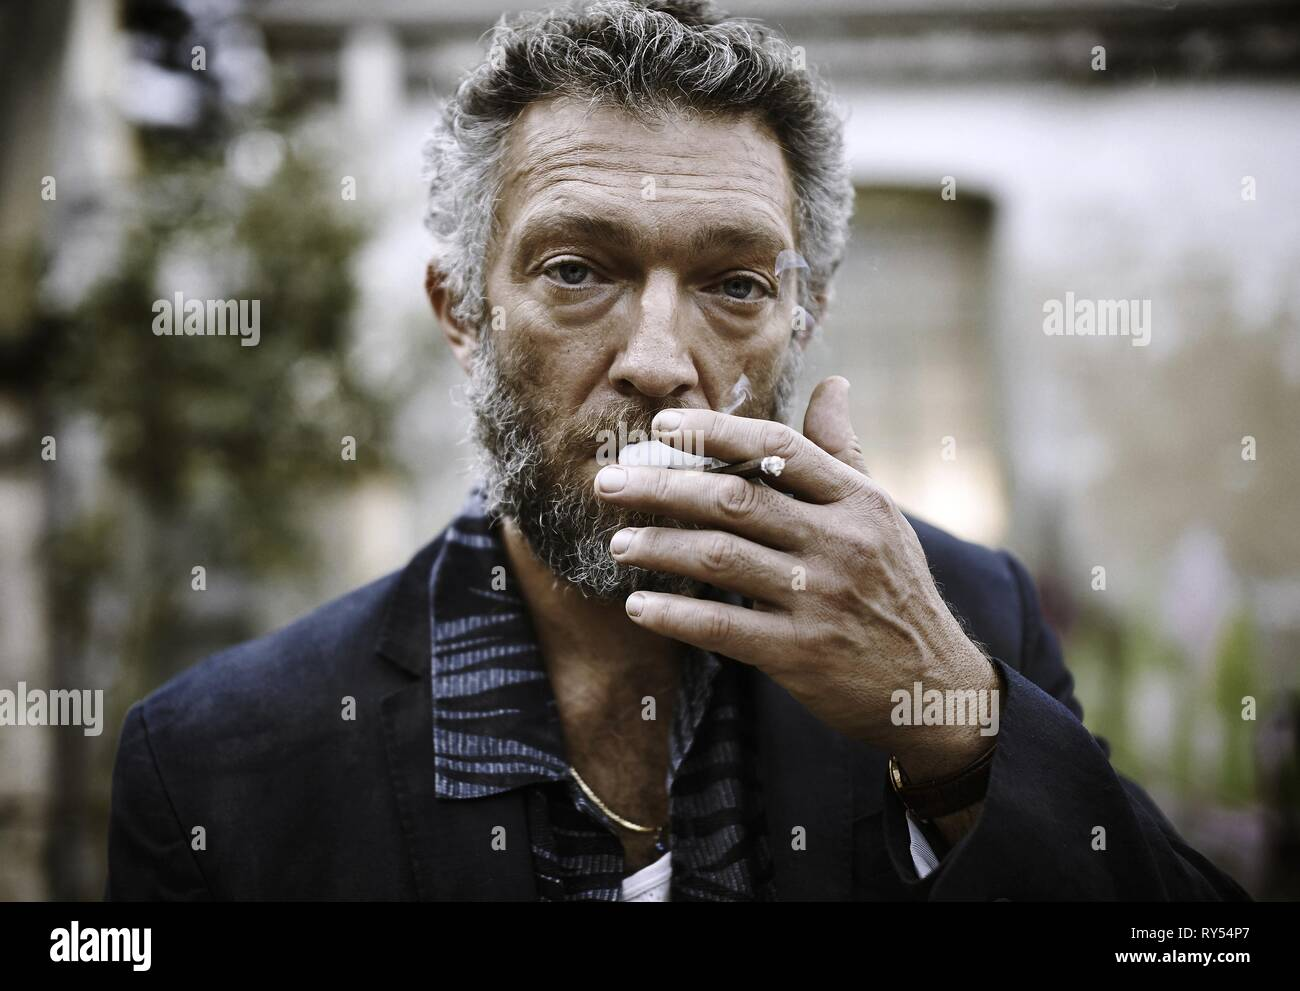 VINCENT CASSEL, PARTISAN, 2015 Stockbild